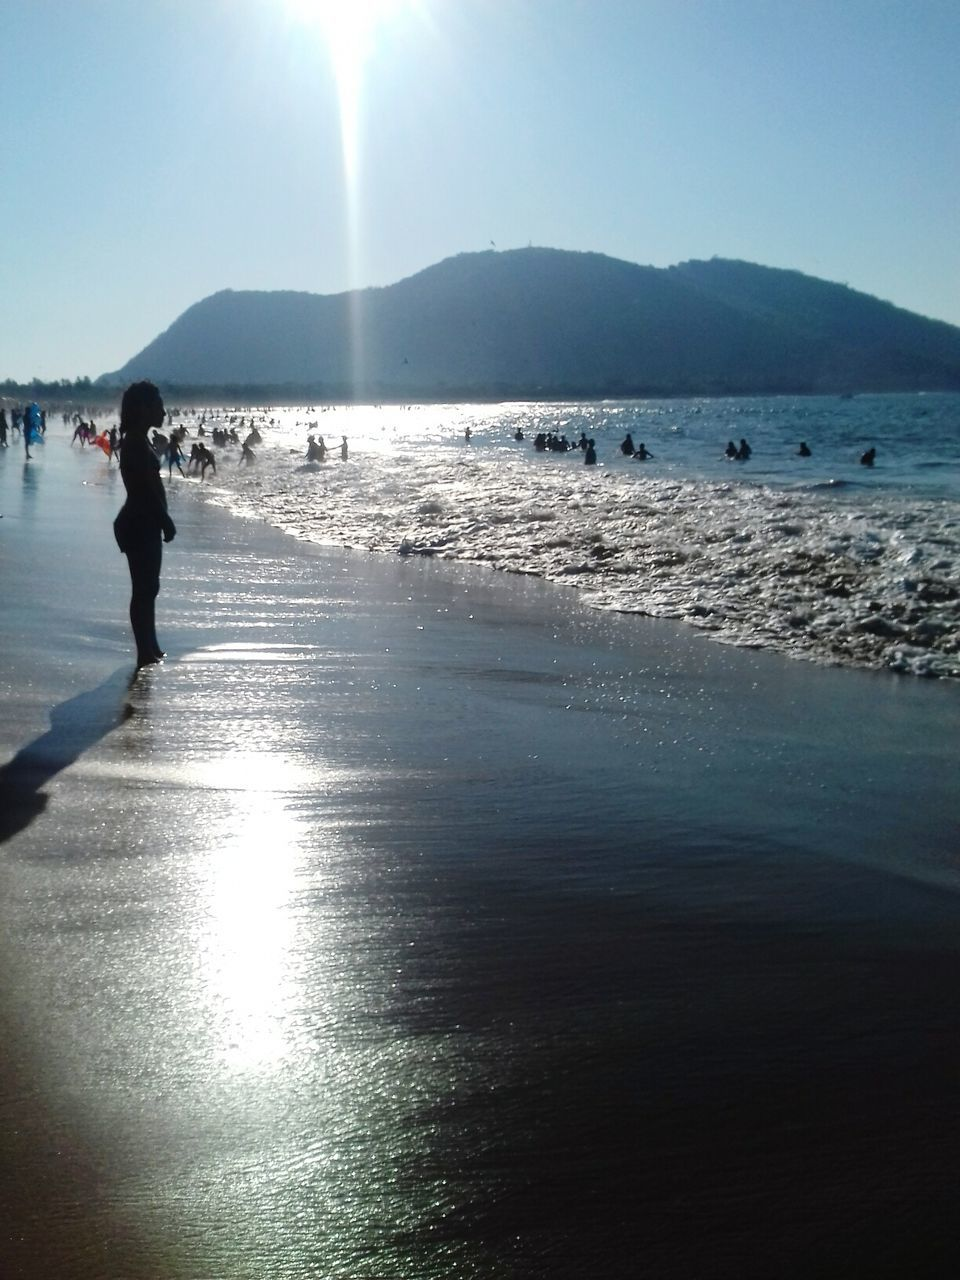 water, beach, sunlight, sea, real people, nature, scenics, beauty in nature, mountain, one person, full length, outdoors, silhouette, day, sky, vacations, standing, clear sky, people